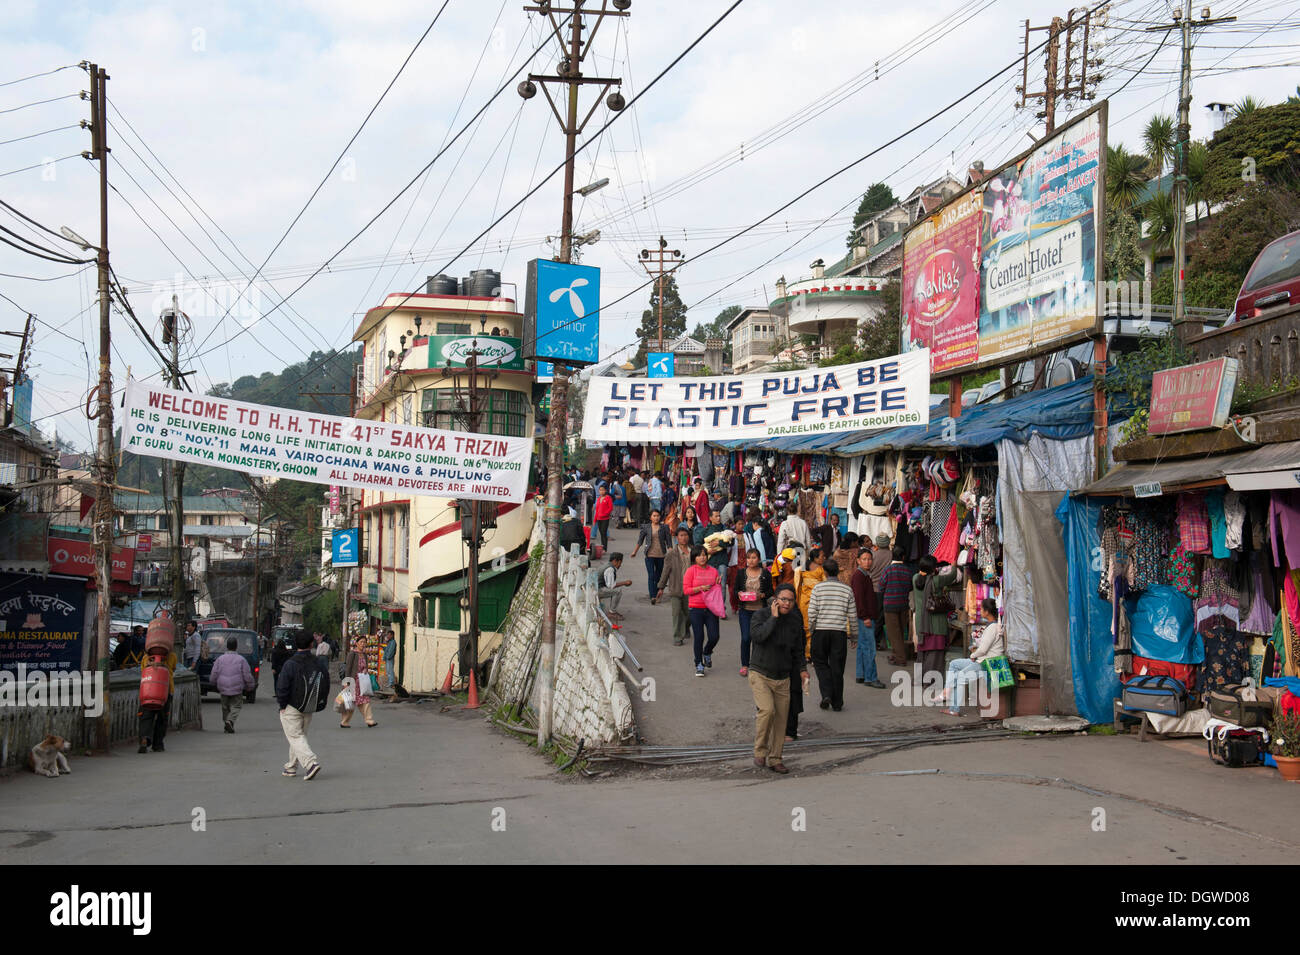 Pedestrians in the town centre, Nehru Road, The Mall, banner calling for avoidance of plastic, Darjeeling, West Bengal, India - Stock Image